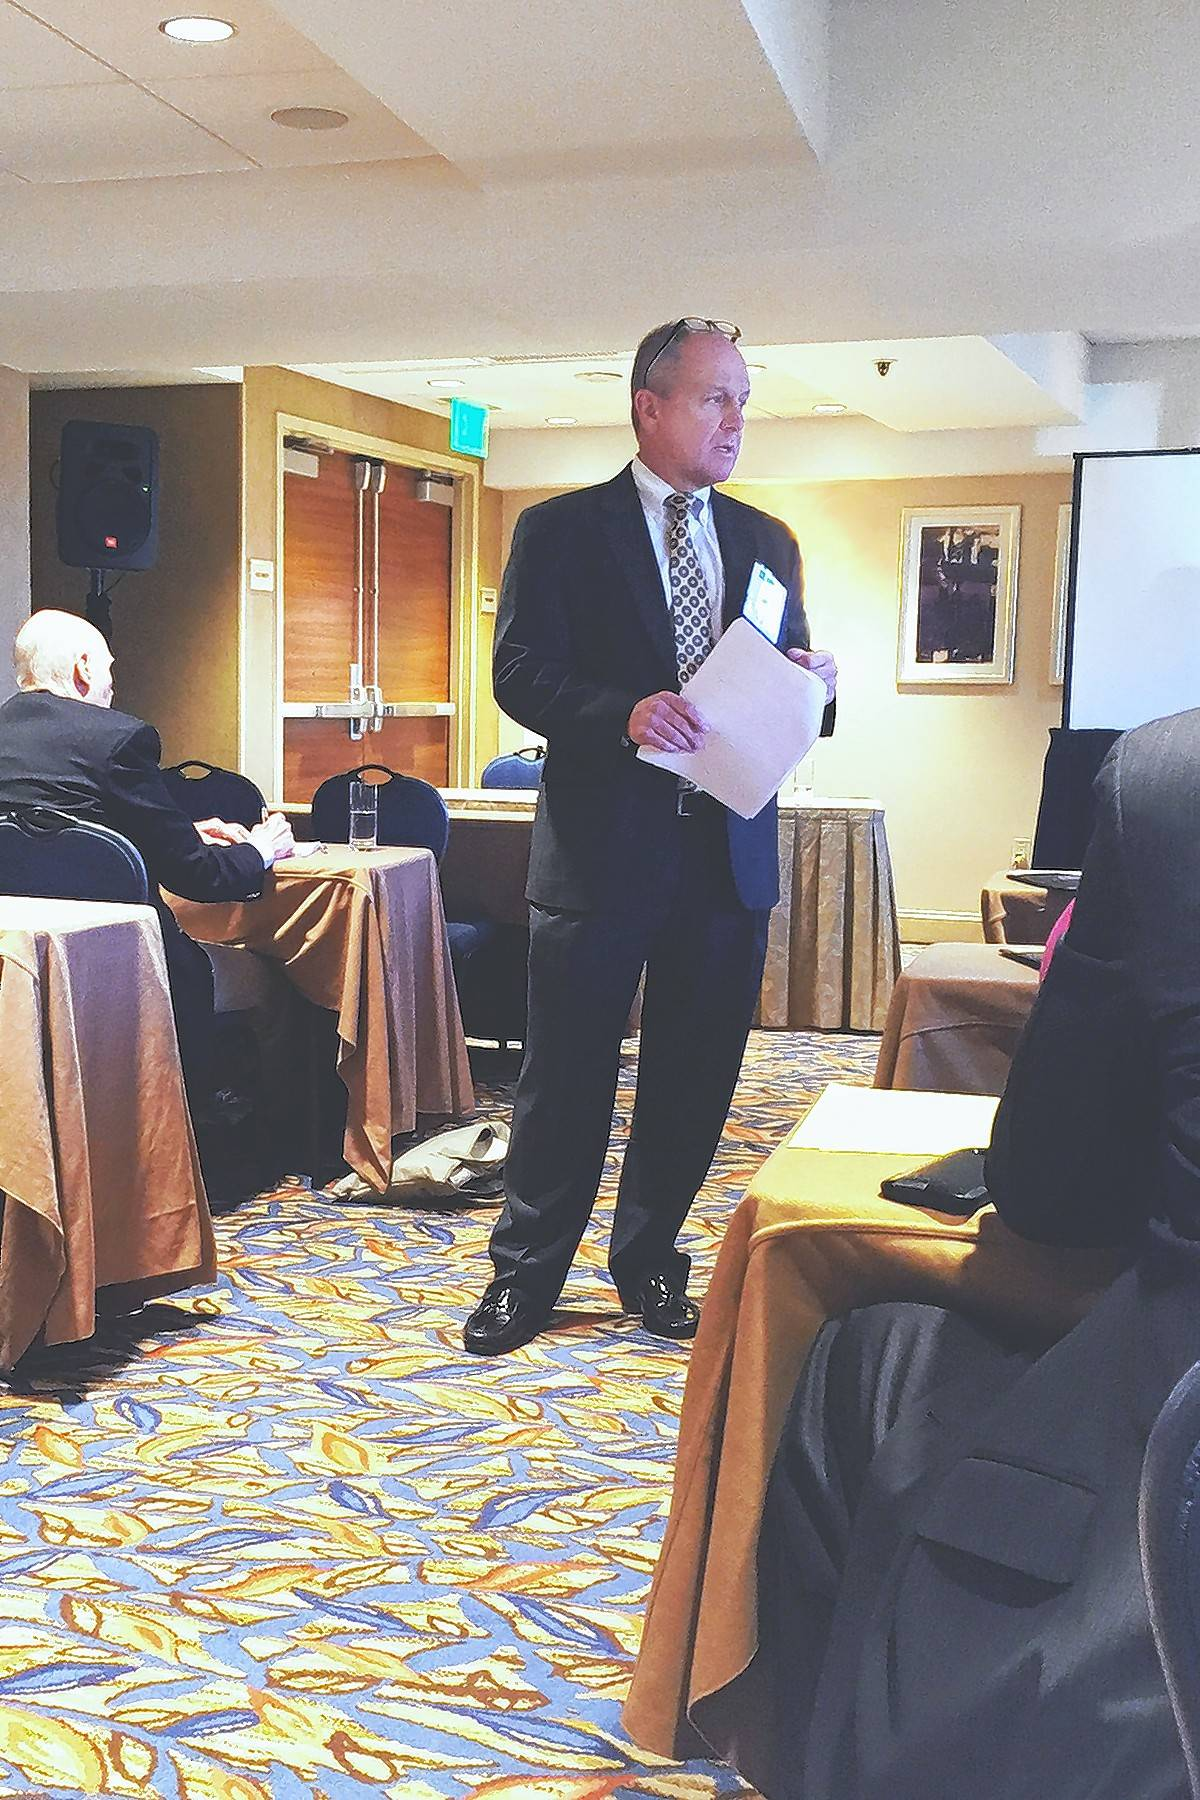 Attorney Kerry Lavelle, who has a practice in Palatine, was invited to speak at an American Bar Association conference.